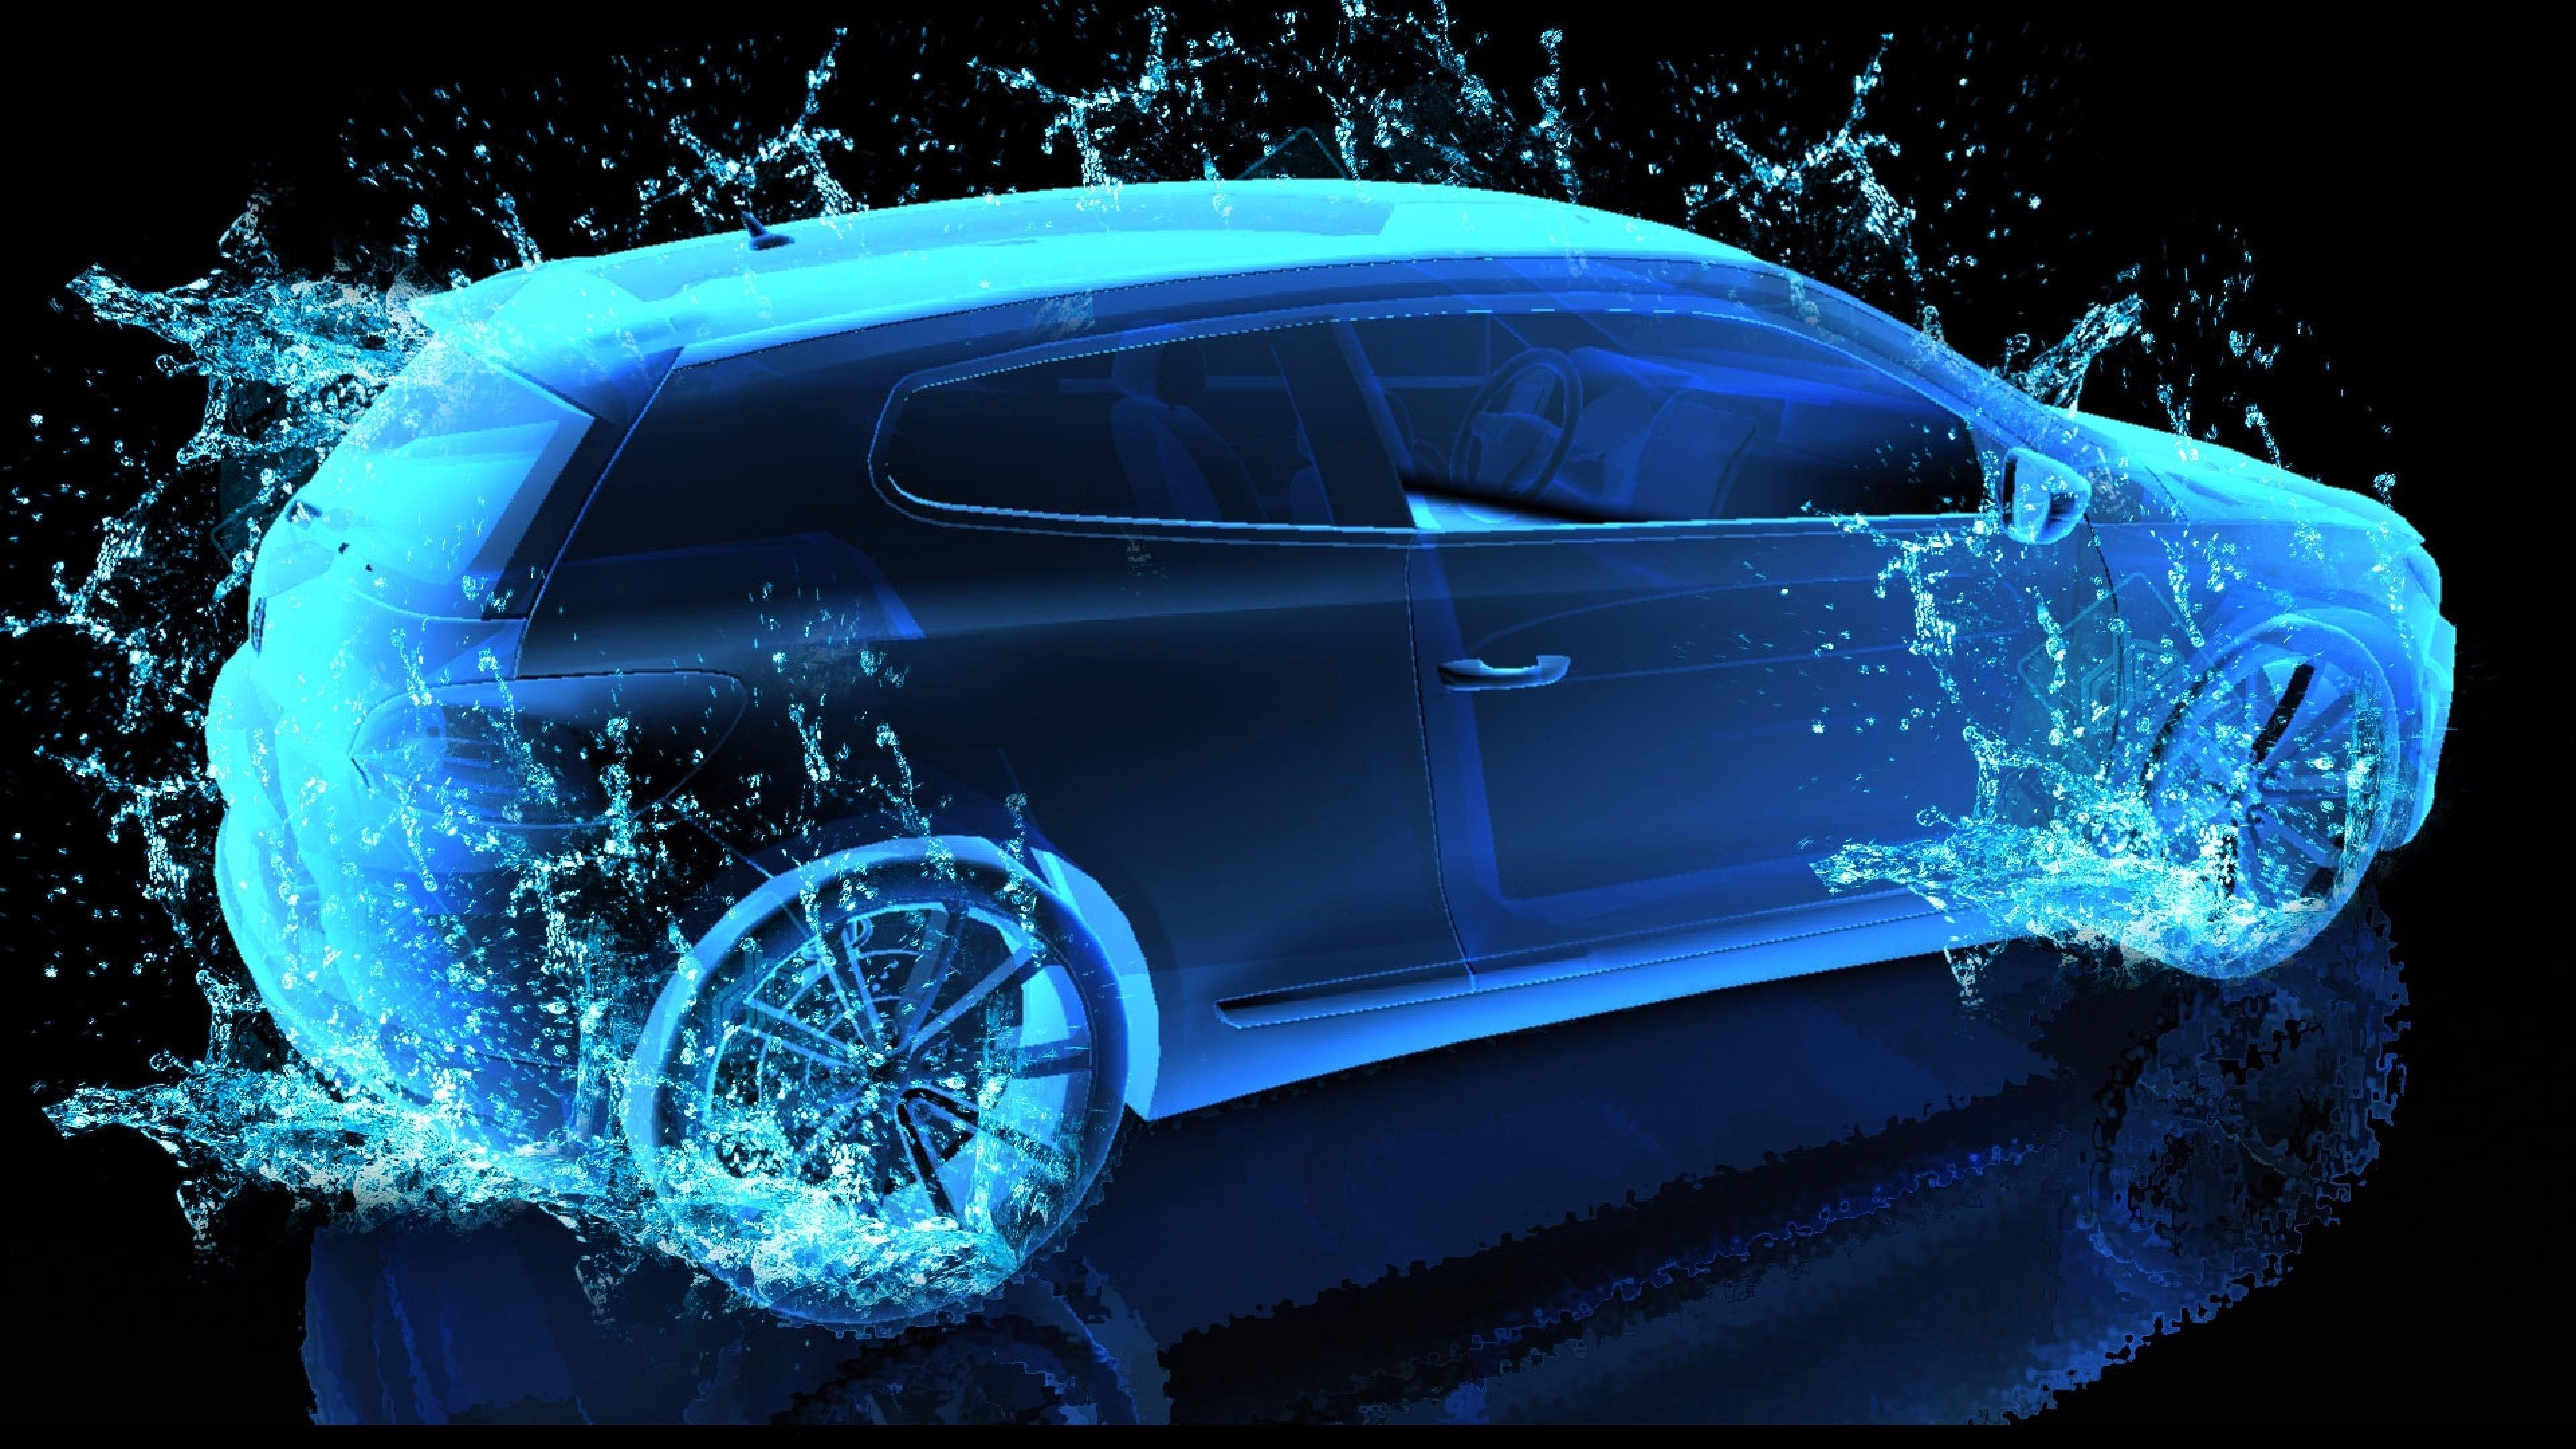 Blue neon light car - Digital art wallpaper